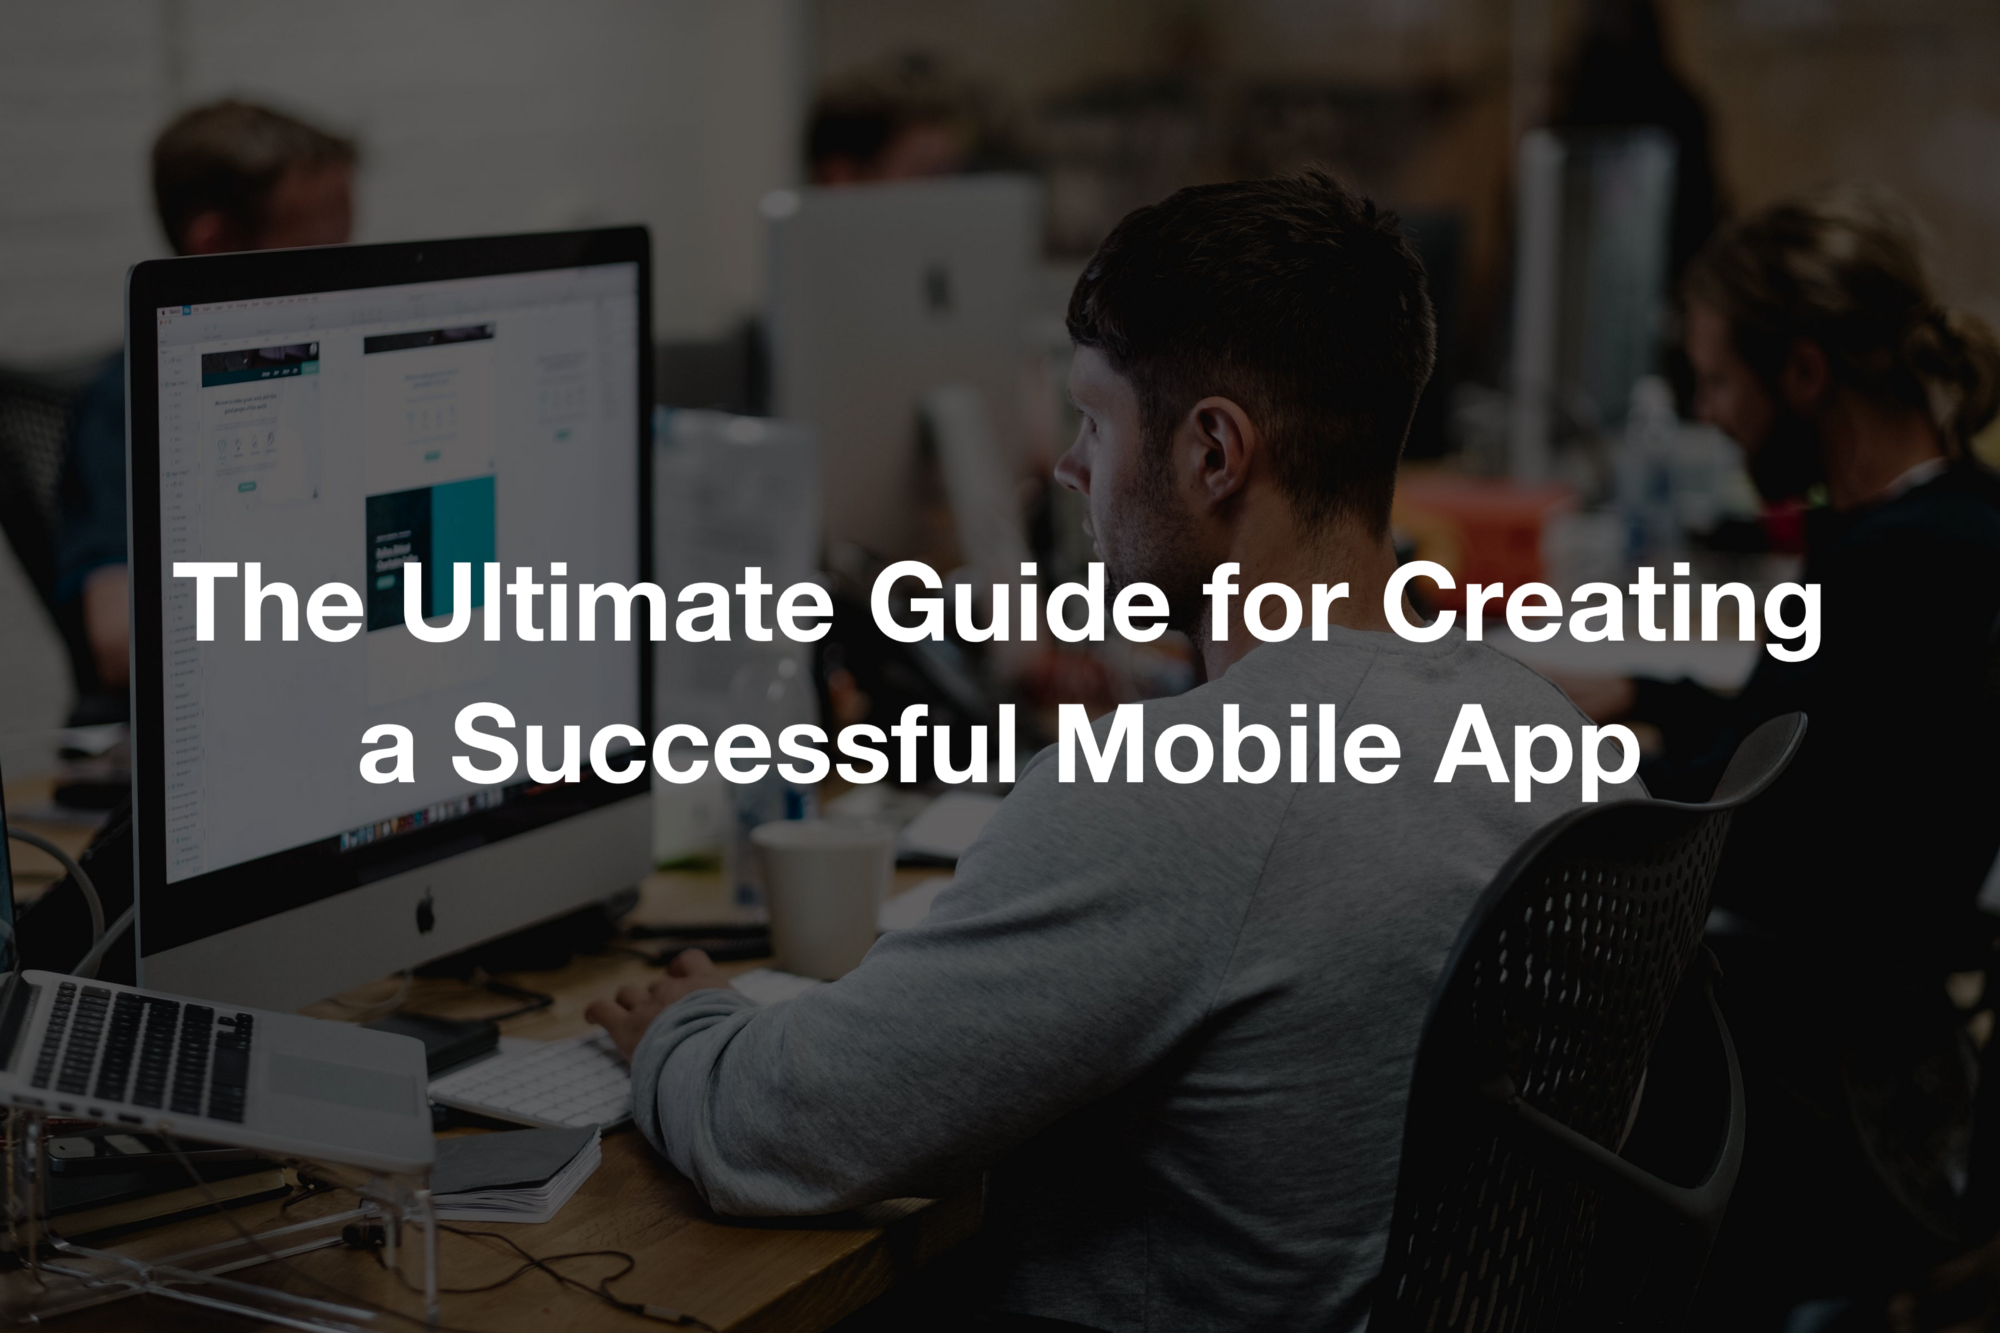 The Ultimate Guide For Creating A Successful Mobile App In 2018 To Optimizing Your Webs But First Outline